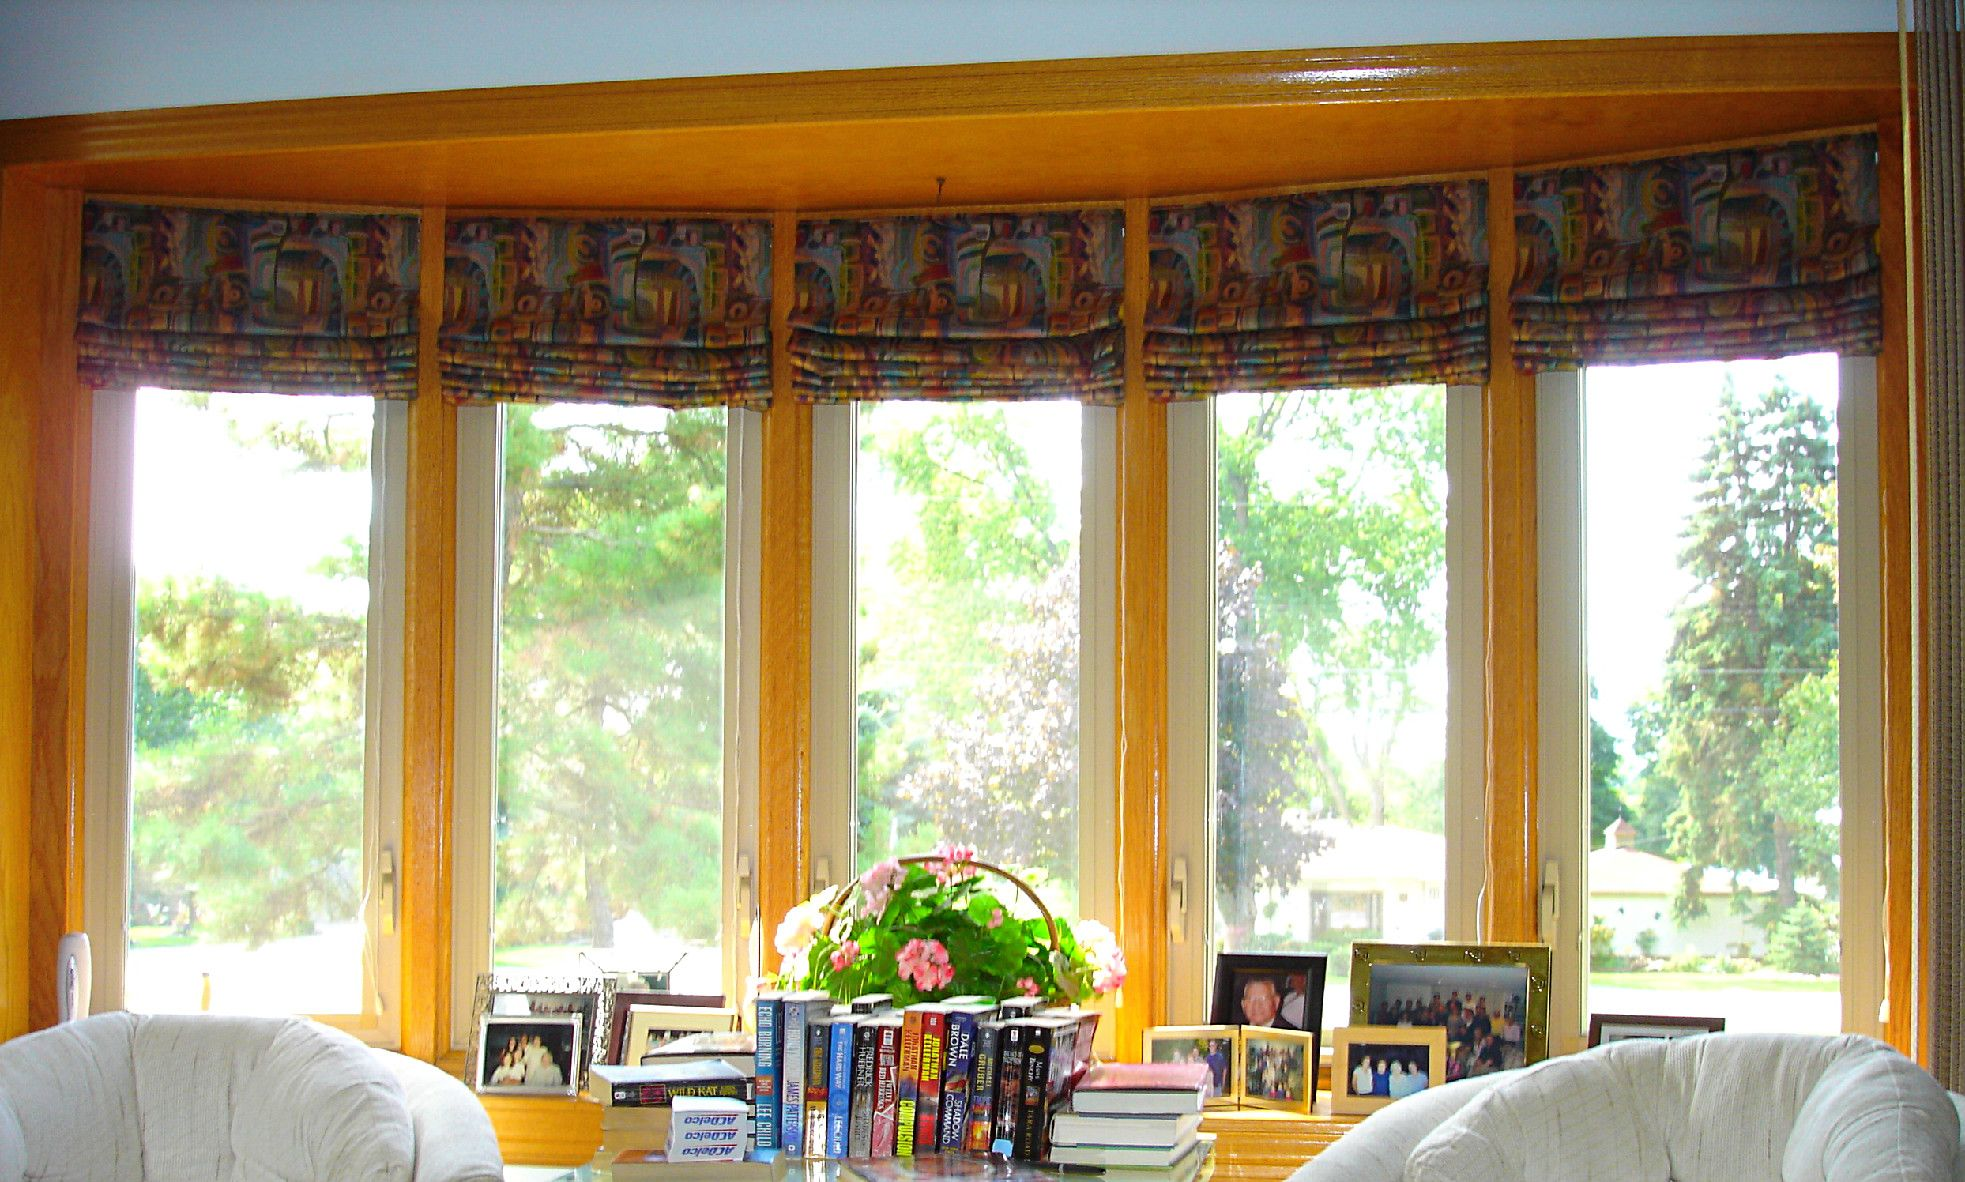 Delightful Bow Window Treatments Ideas Part - 11: Roman Shades In Fabric, Inside The Curve Of This Bow Window...bow